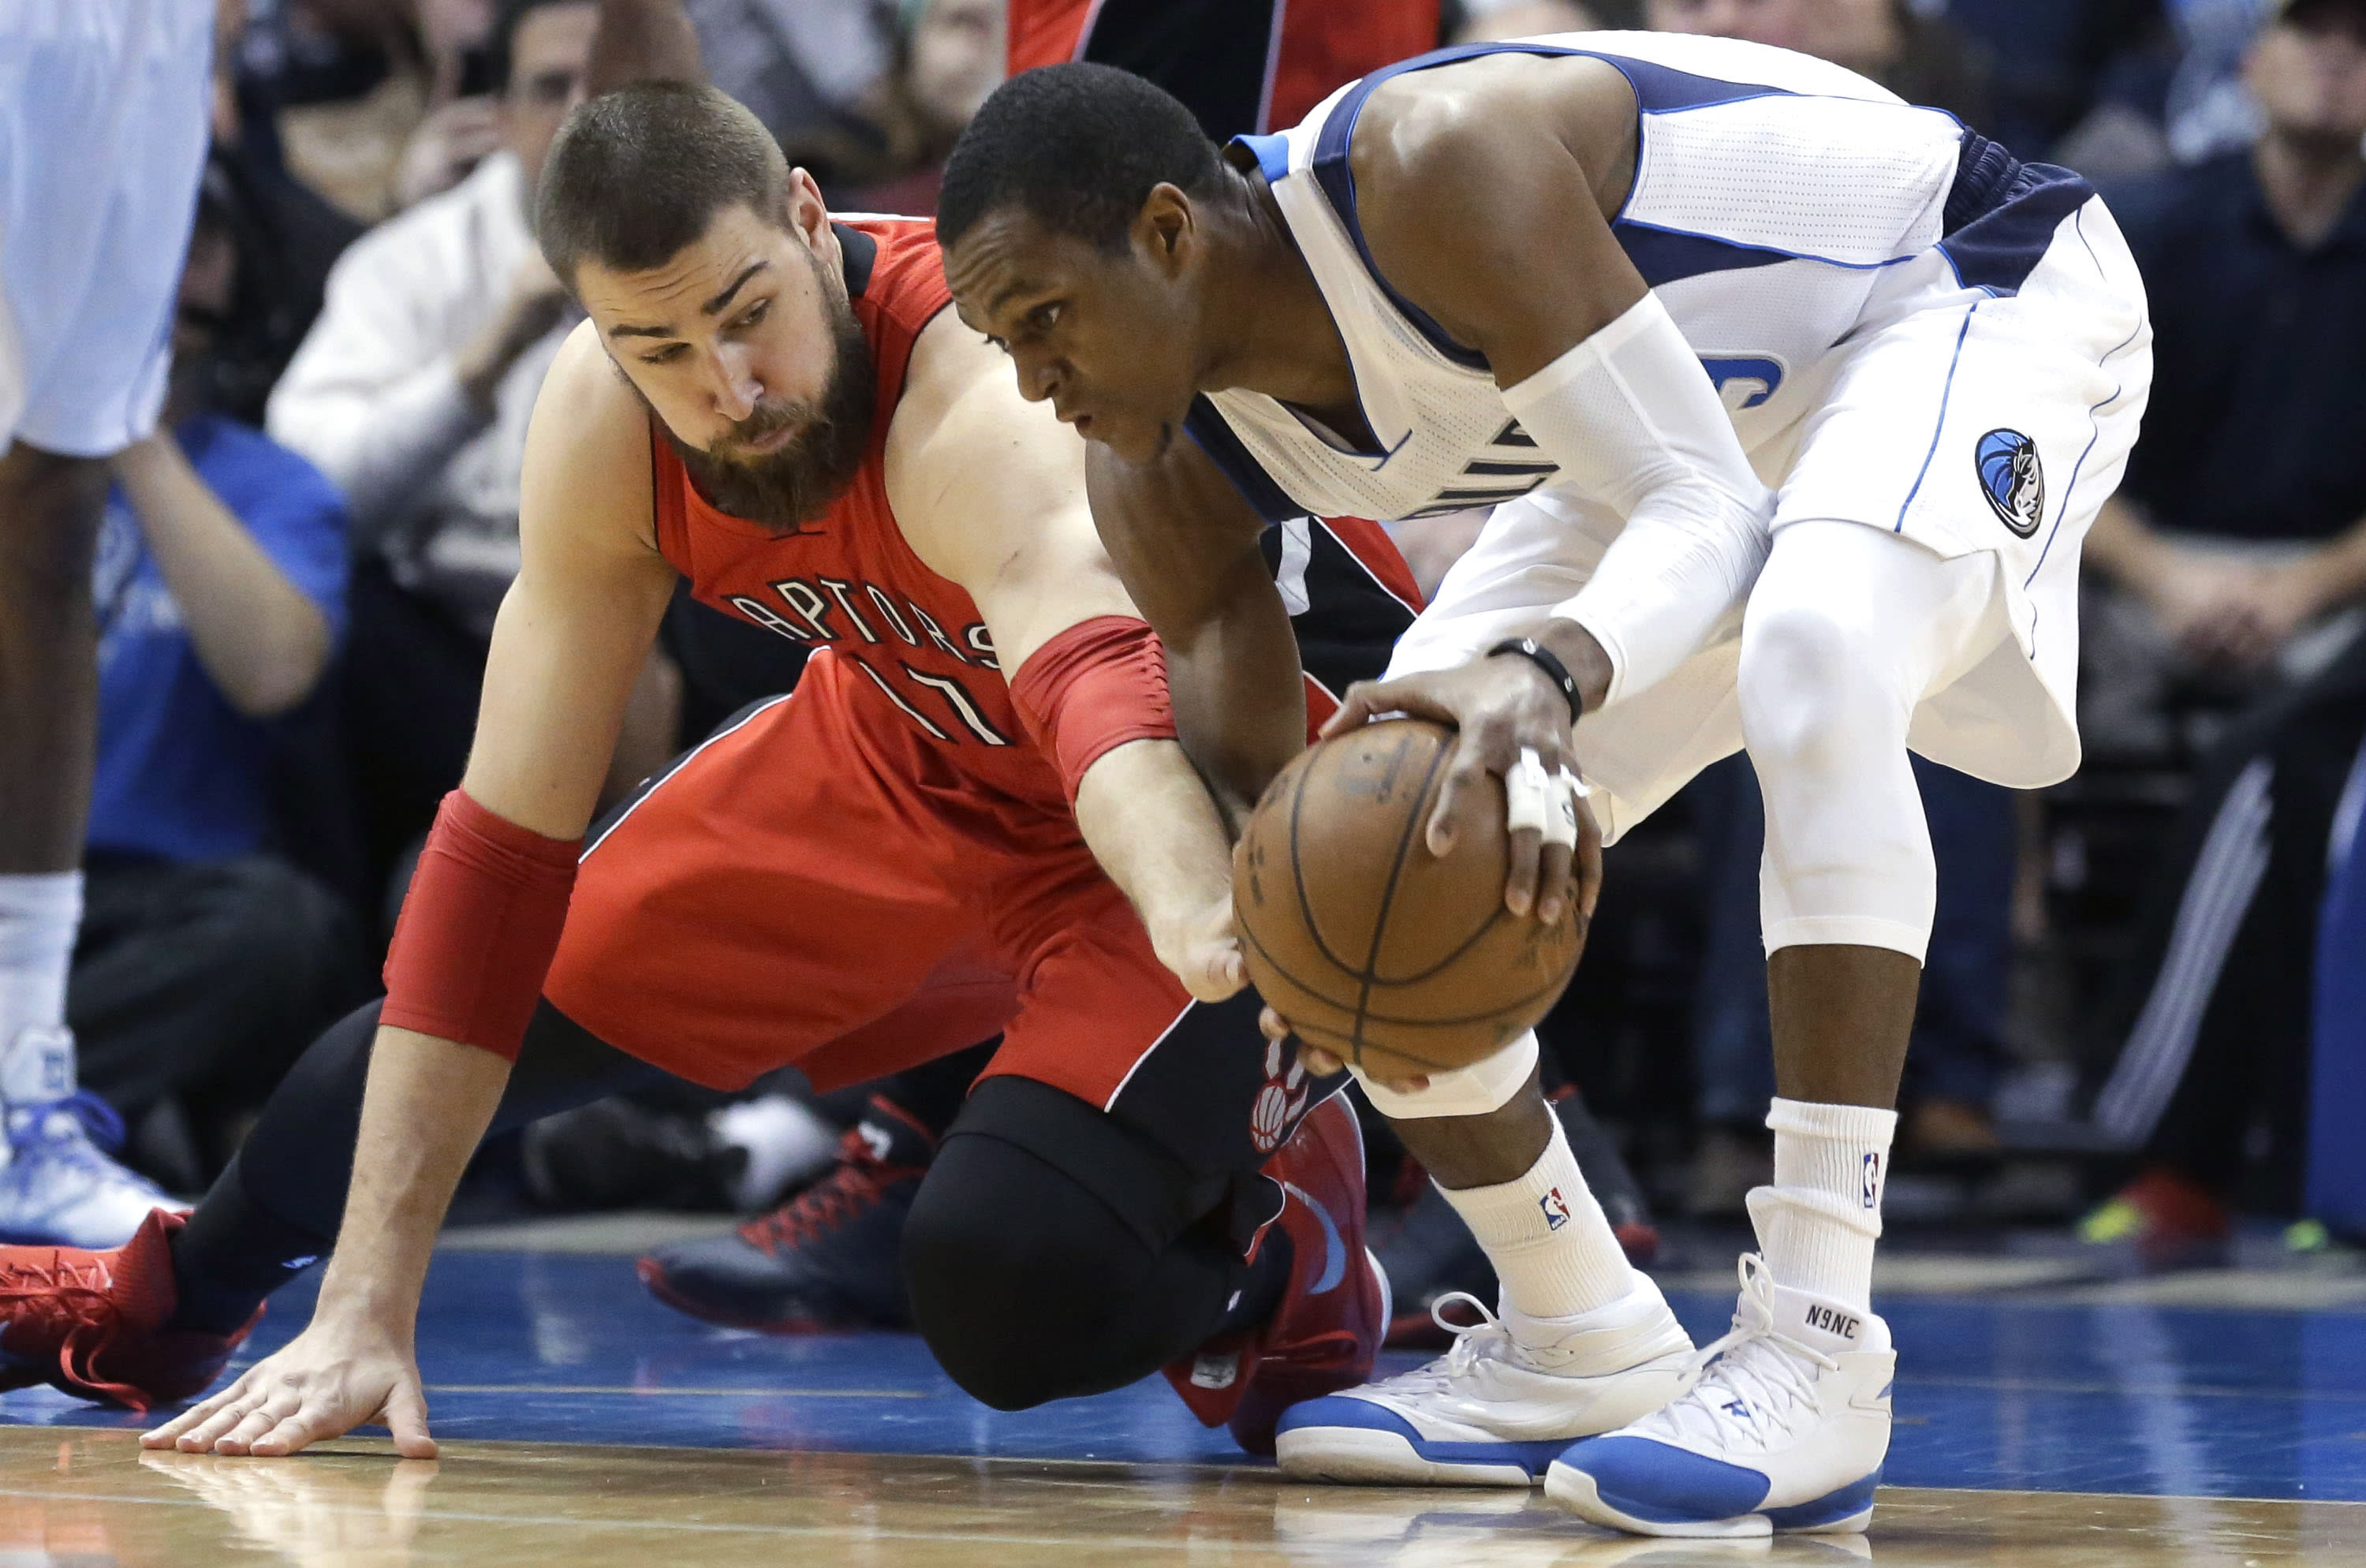 Mavs suspend Rondo for game after exchange with Carlisle